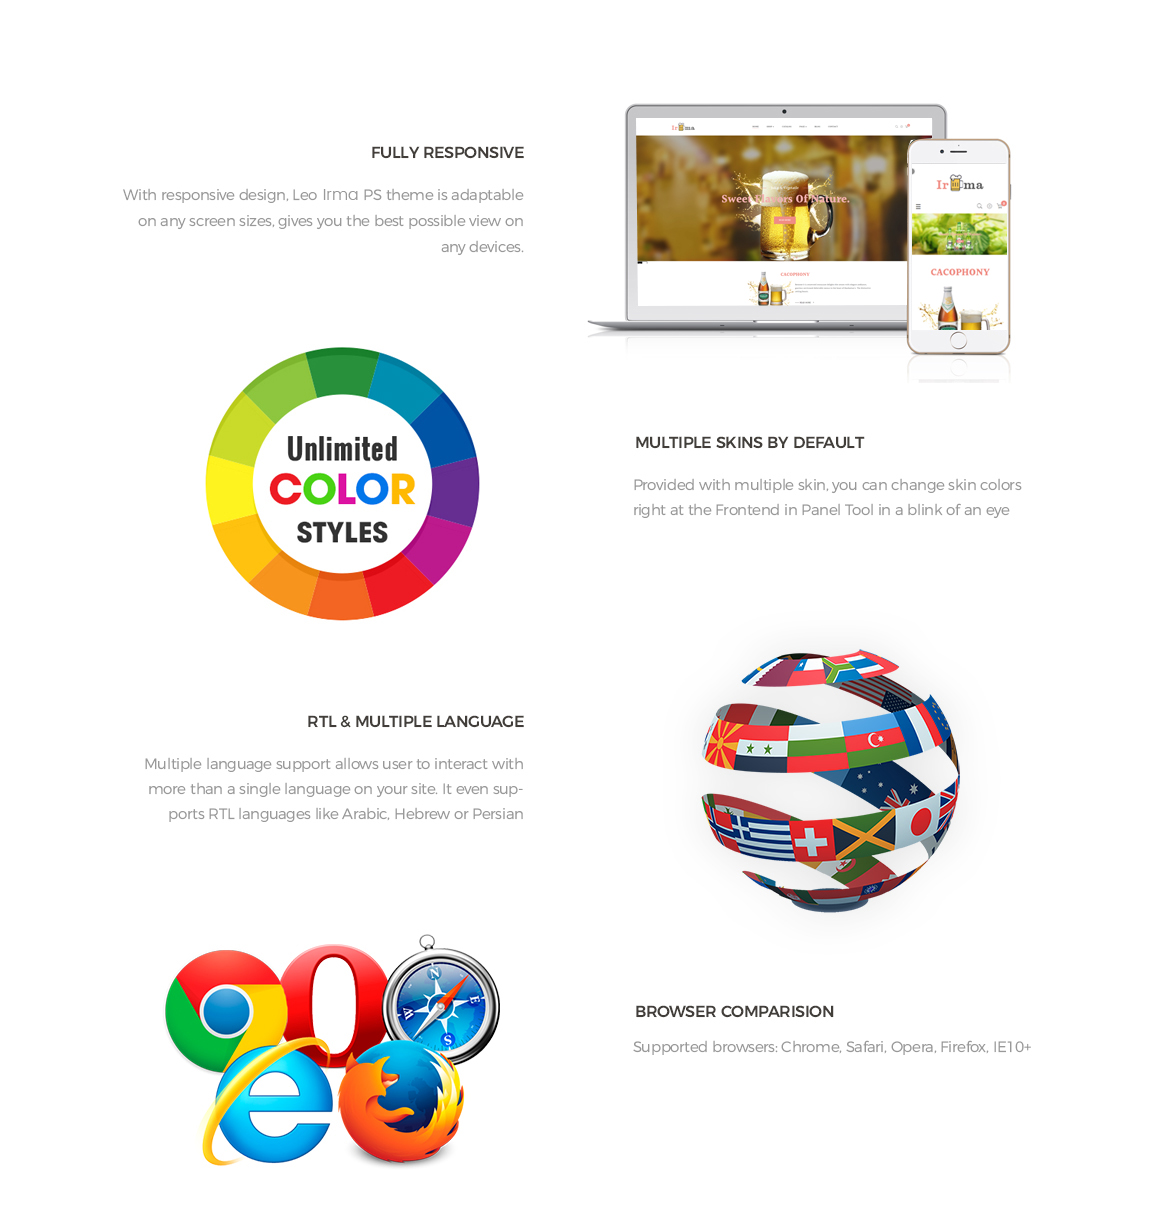 Prestashop 1.7 theme features - Leo Irma - Drink, Beer, Wine, Alcohol, Brewery store